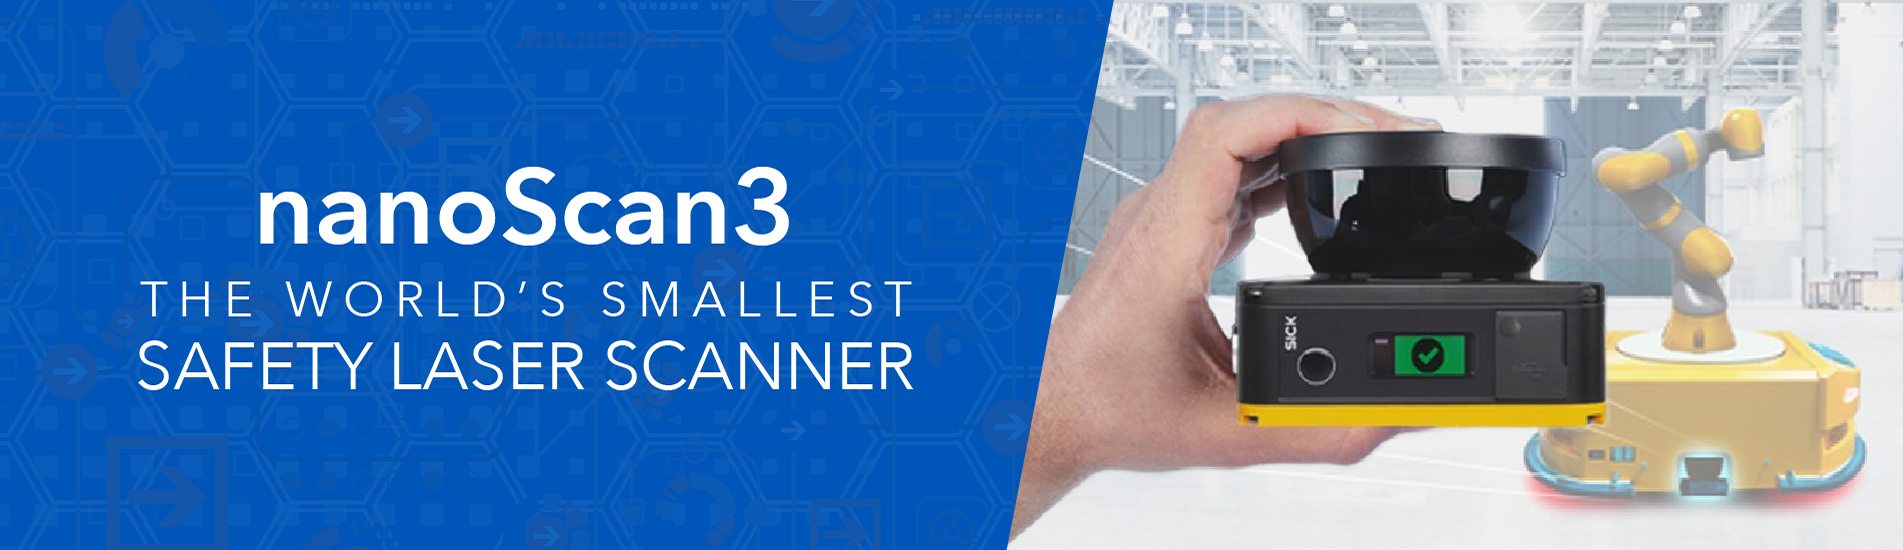 Sick's nanoScan3 - The World's Smallest Safety Laser Scanner